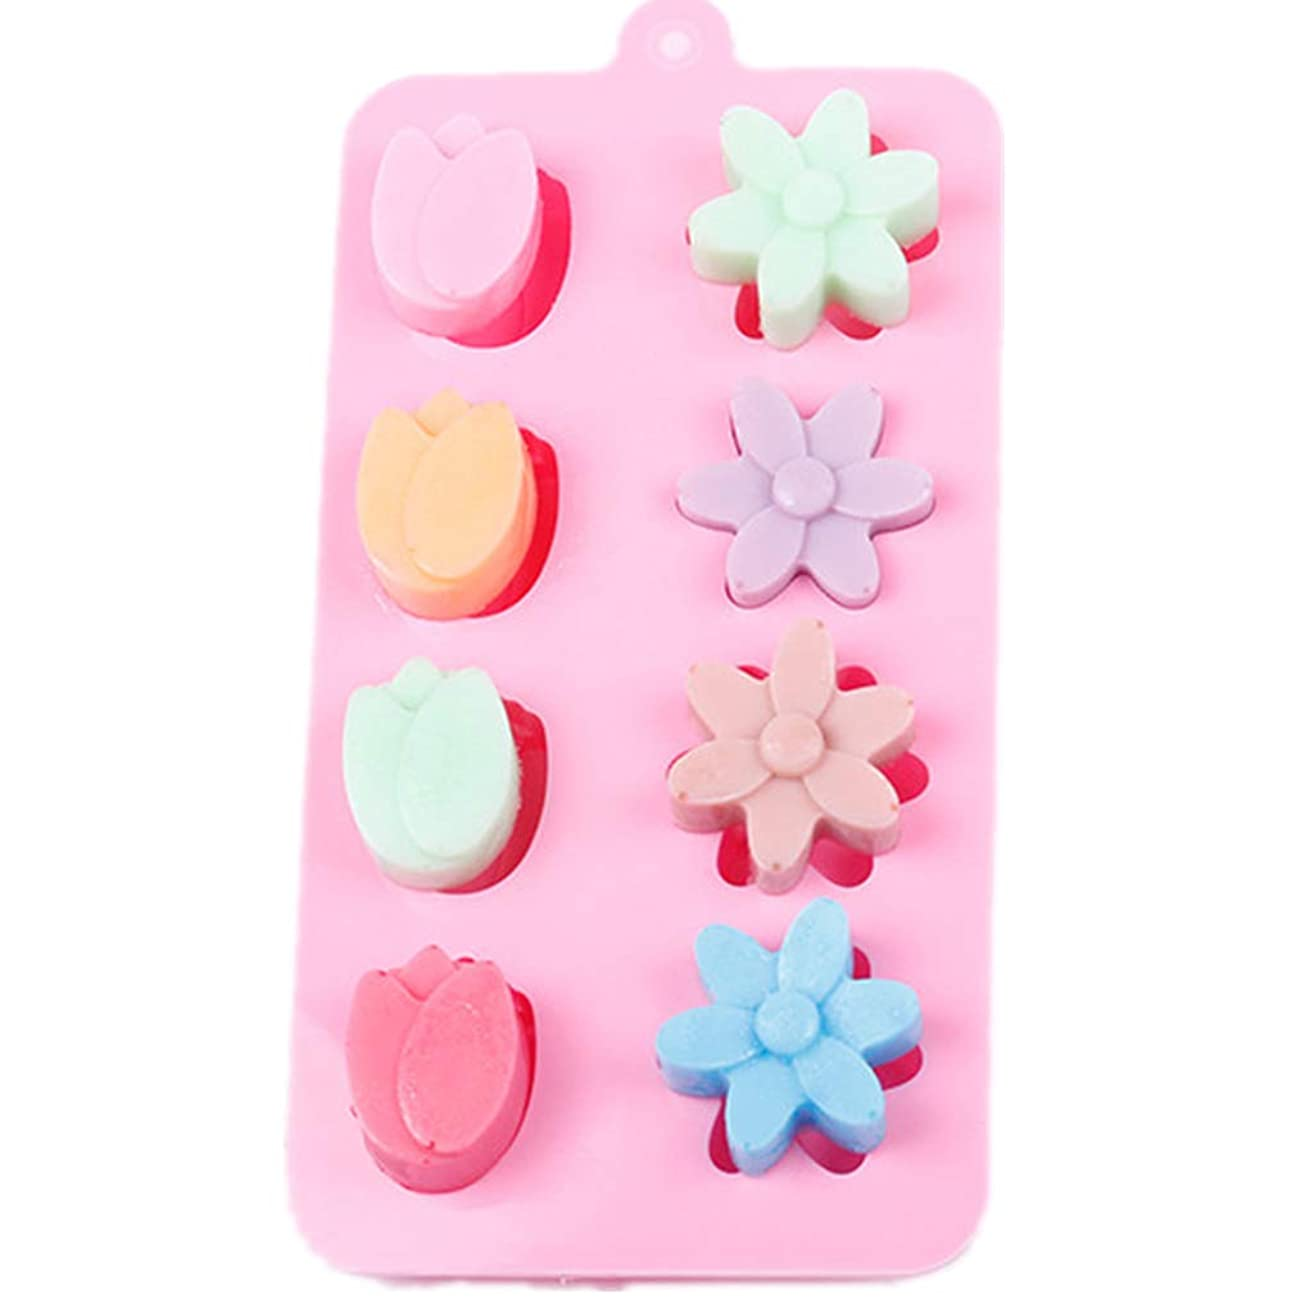 Amaping 15 Cavity Tulips Flower Pattern Silicone DIY Chocolate Ice Cube Mold for Cookie Sugar Candy Jelly Soap Baking Tray Cupcake Mold (Pink)